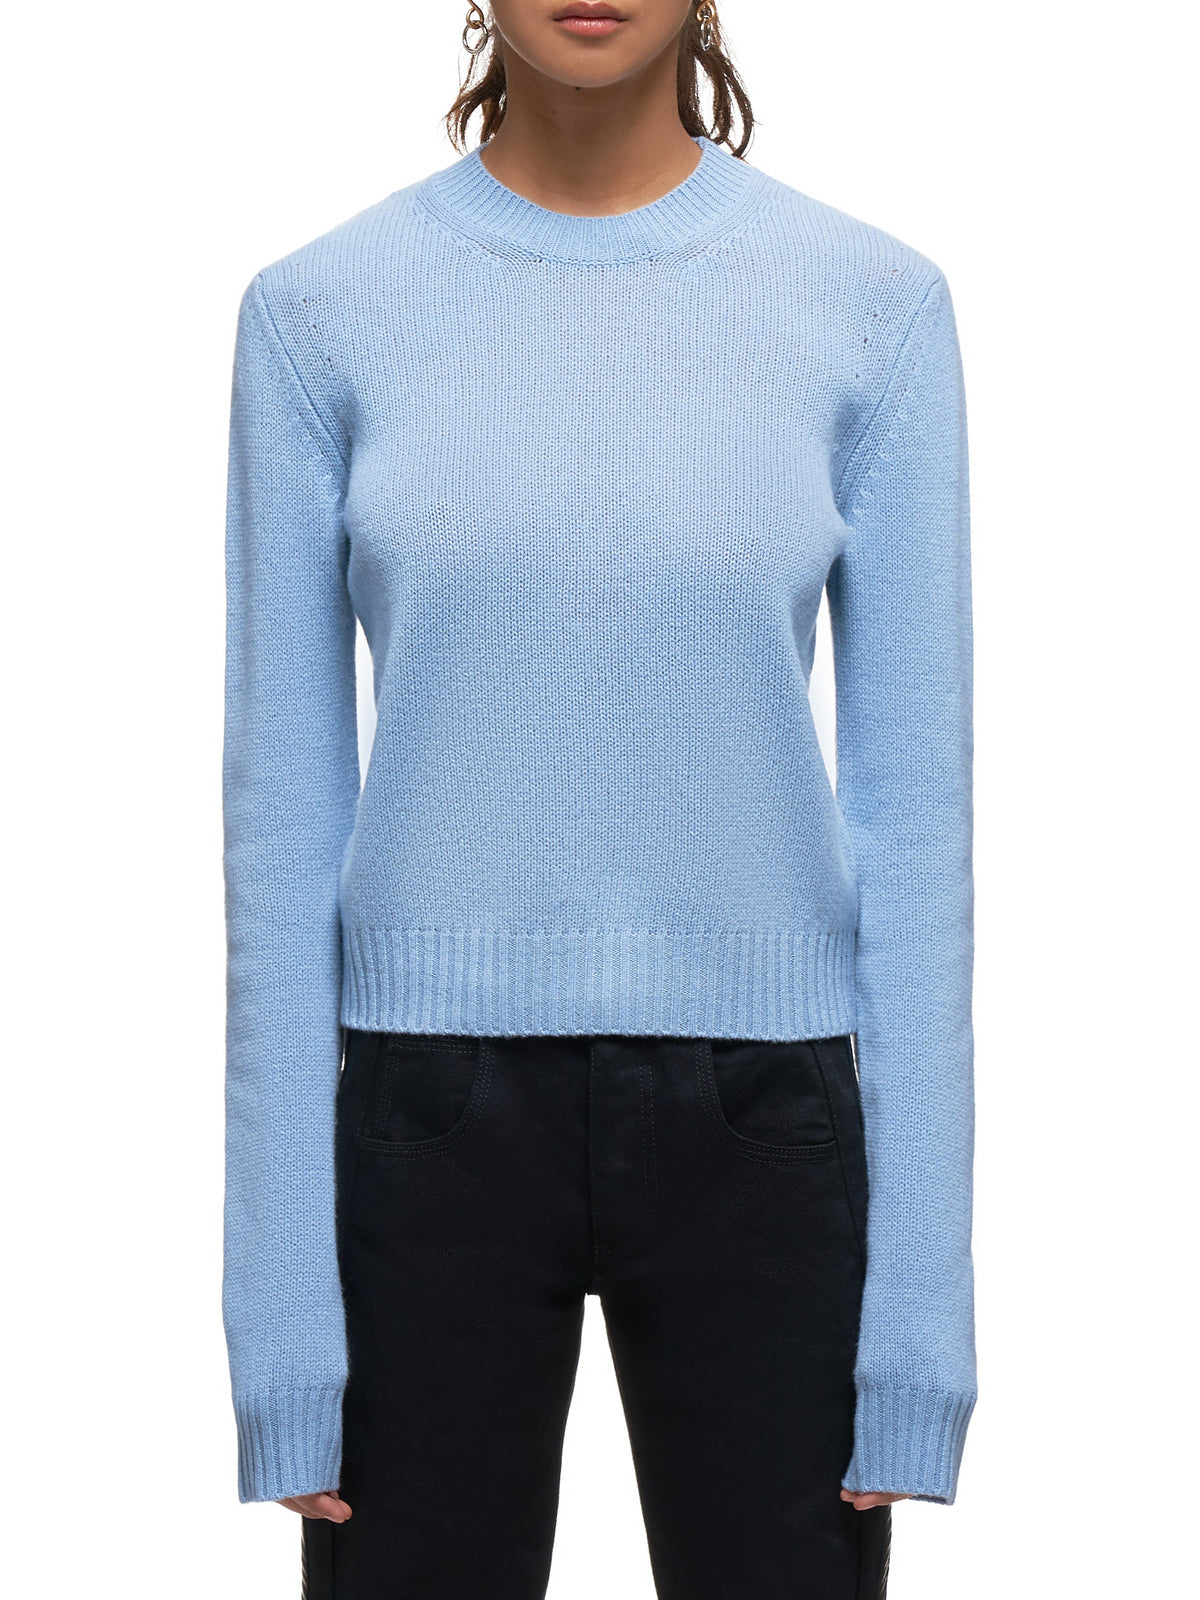 Cashmere Crewneck Sweater (571888VA7T0-1714-LIGHT-BLUE)